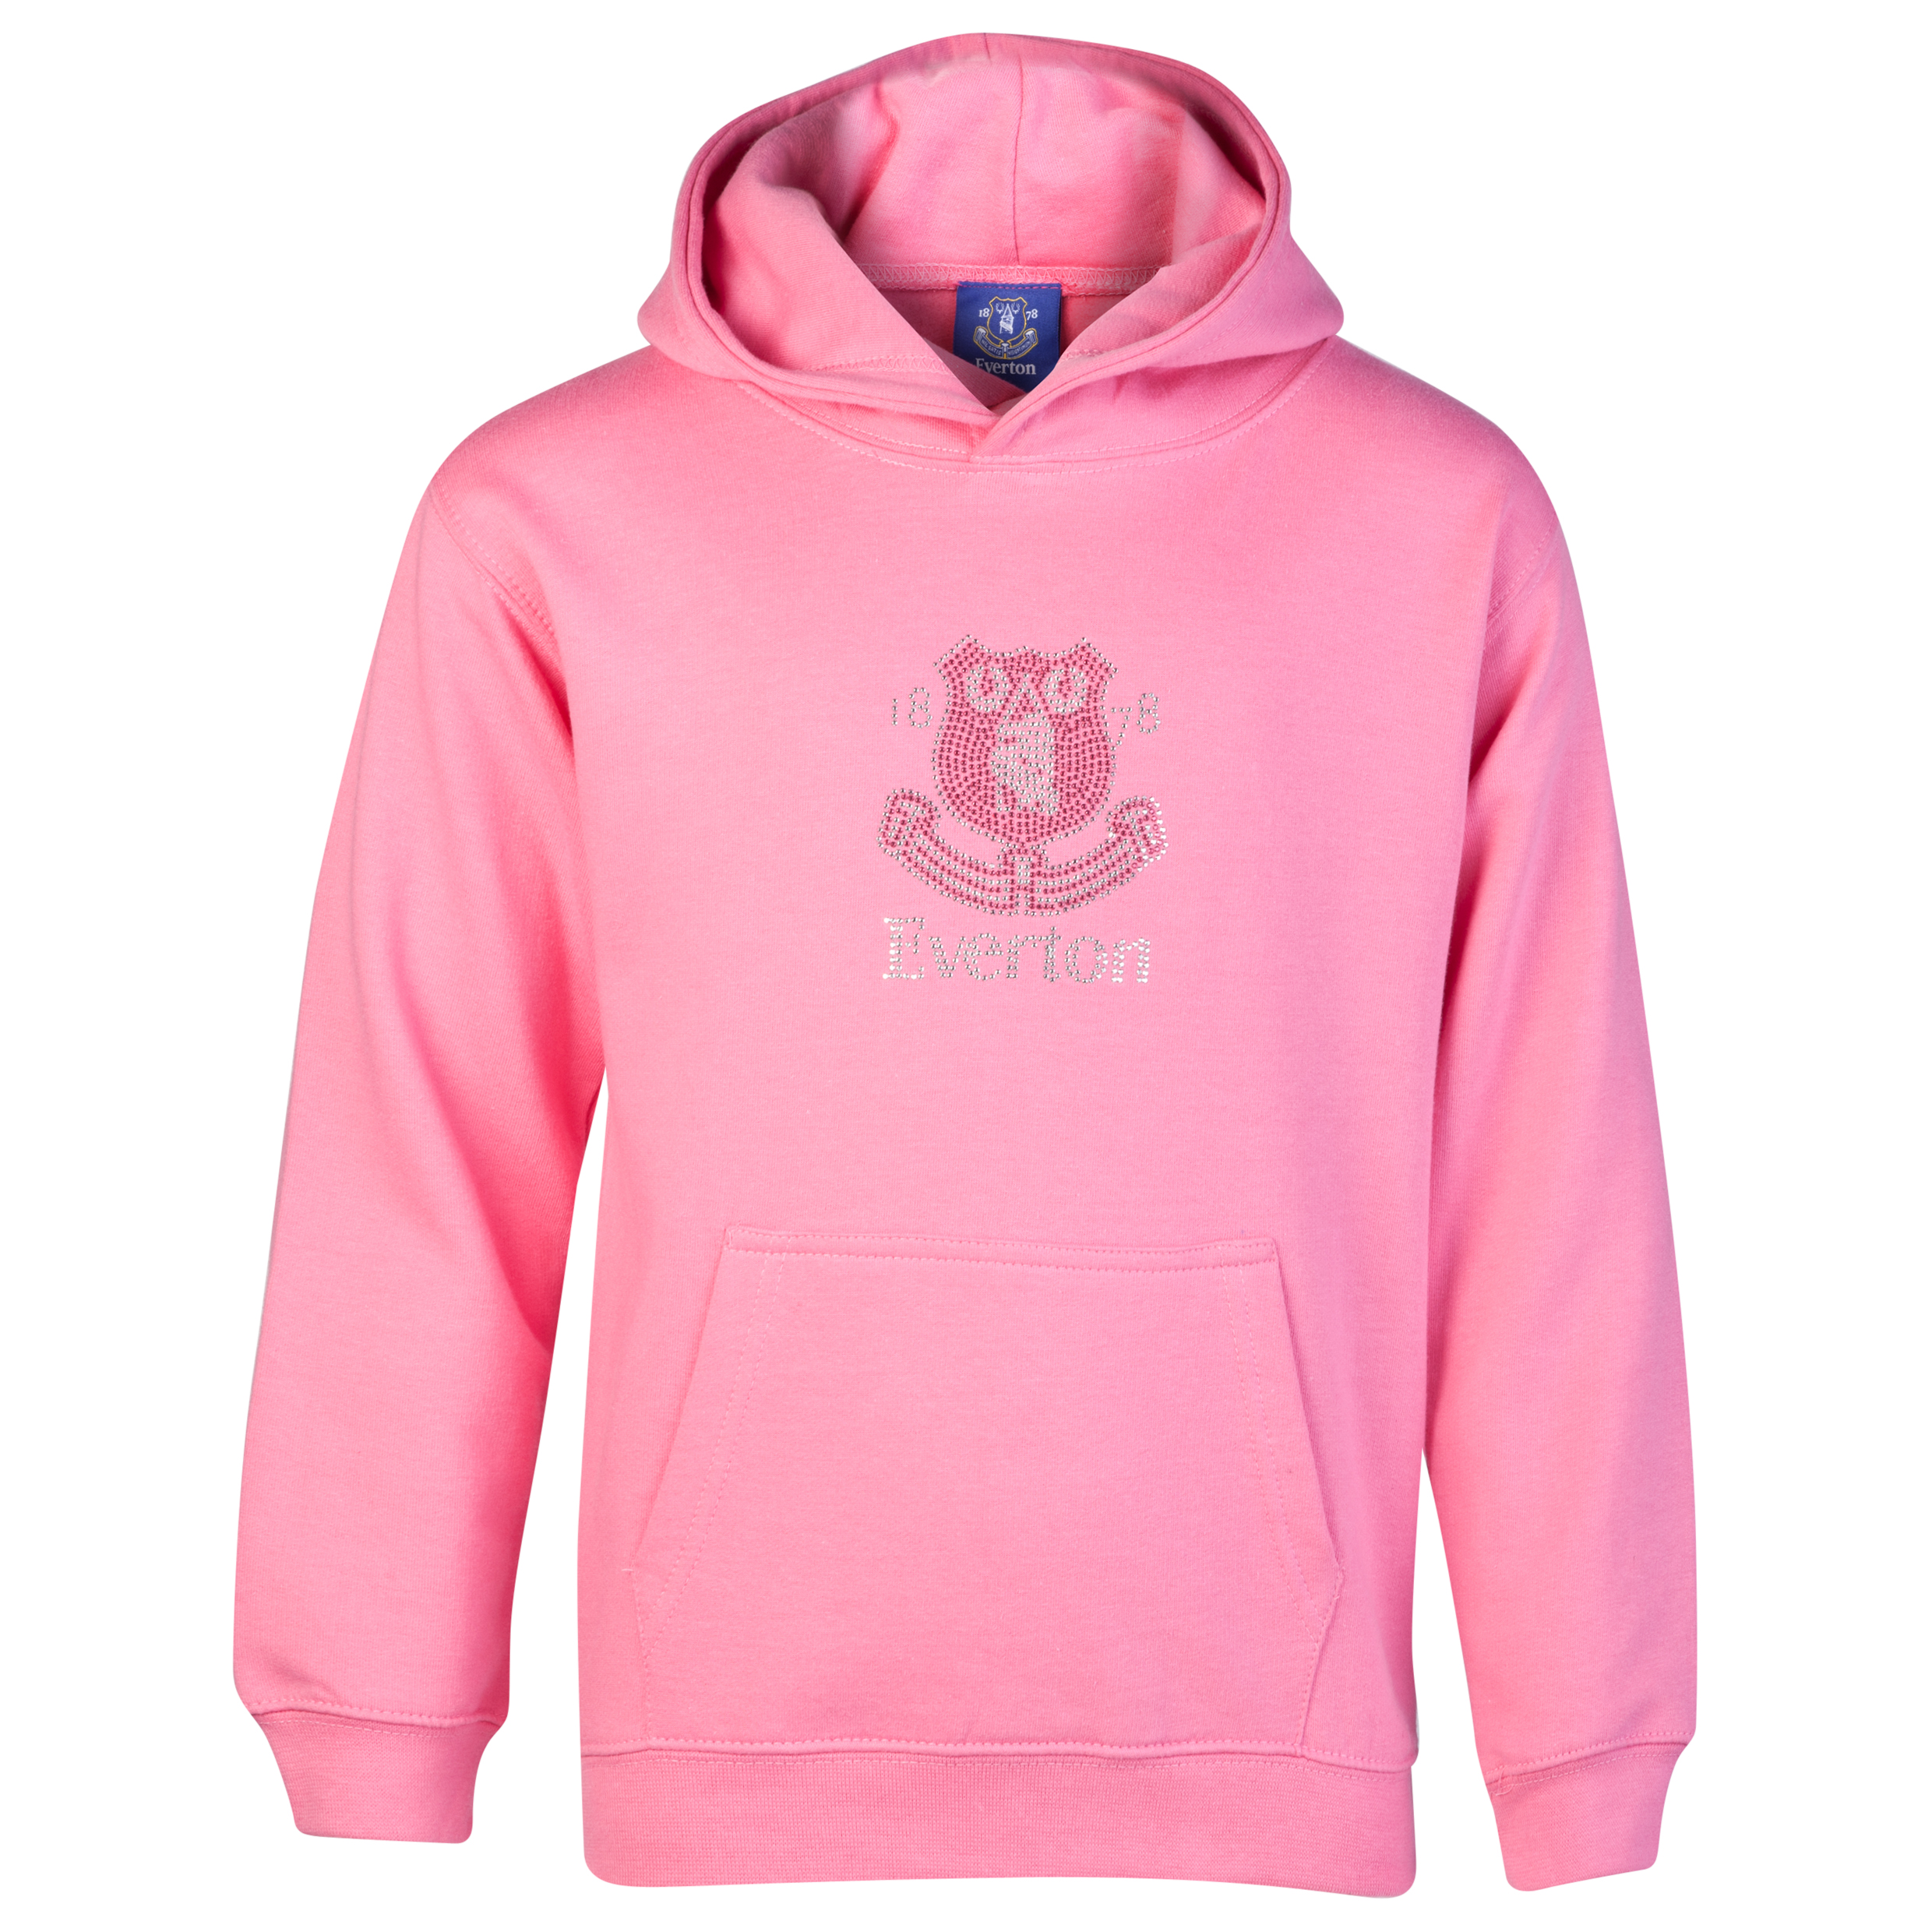 Everton Rhinestone Hoodie - Pink - Older Girls